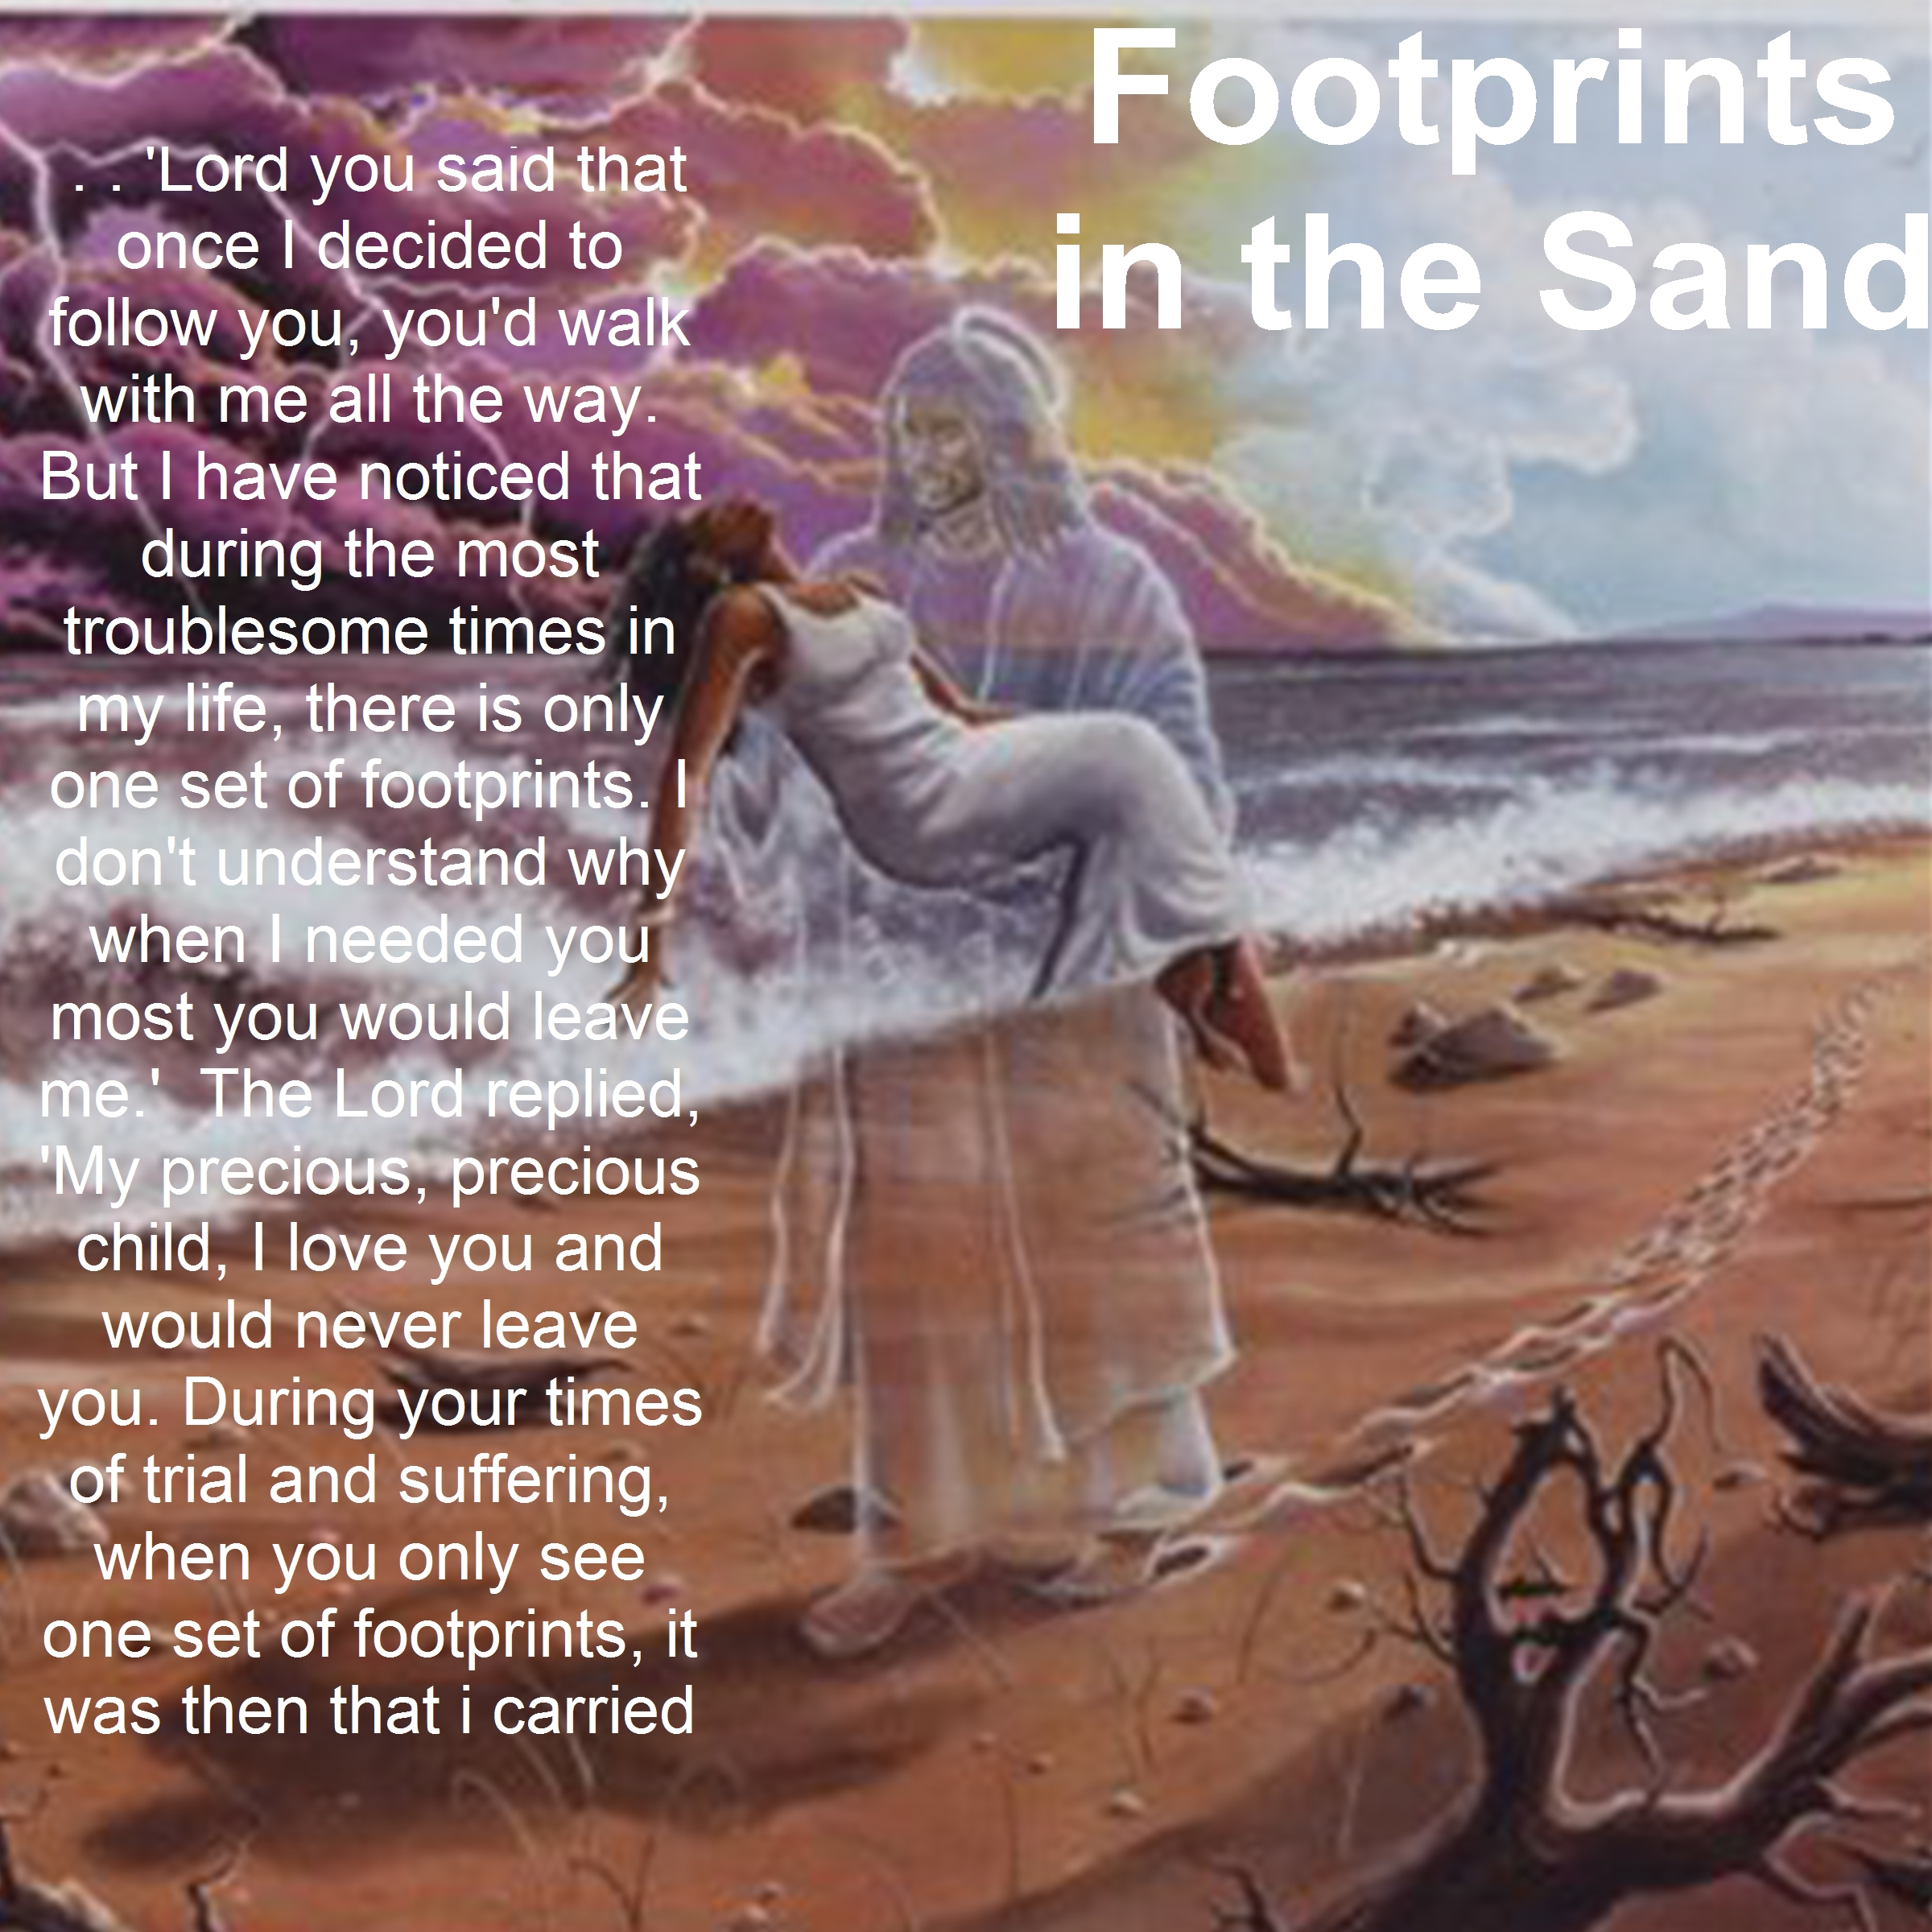 Footprints In The Sand Poem Background Footprints in the sand 2400x2400